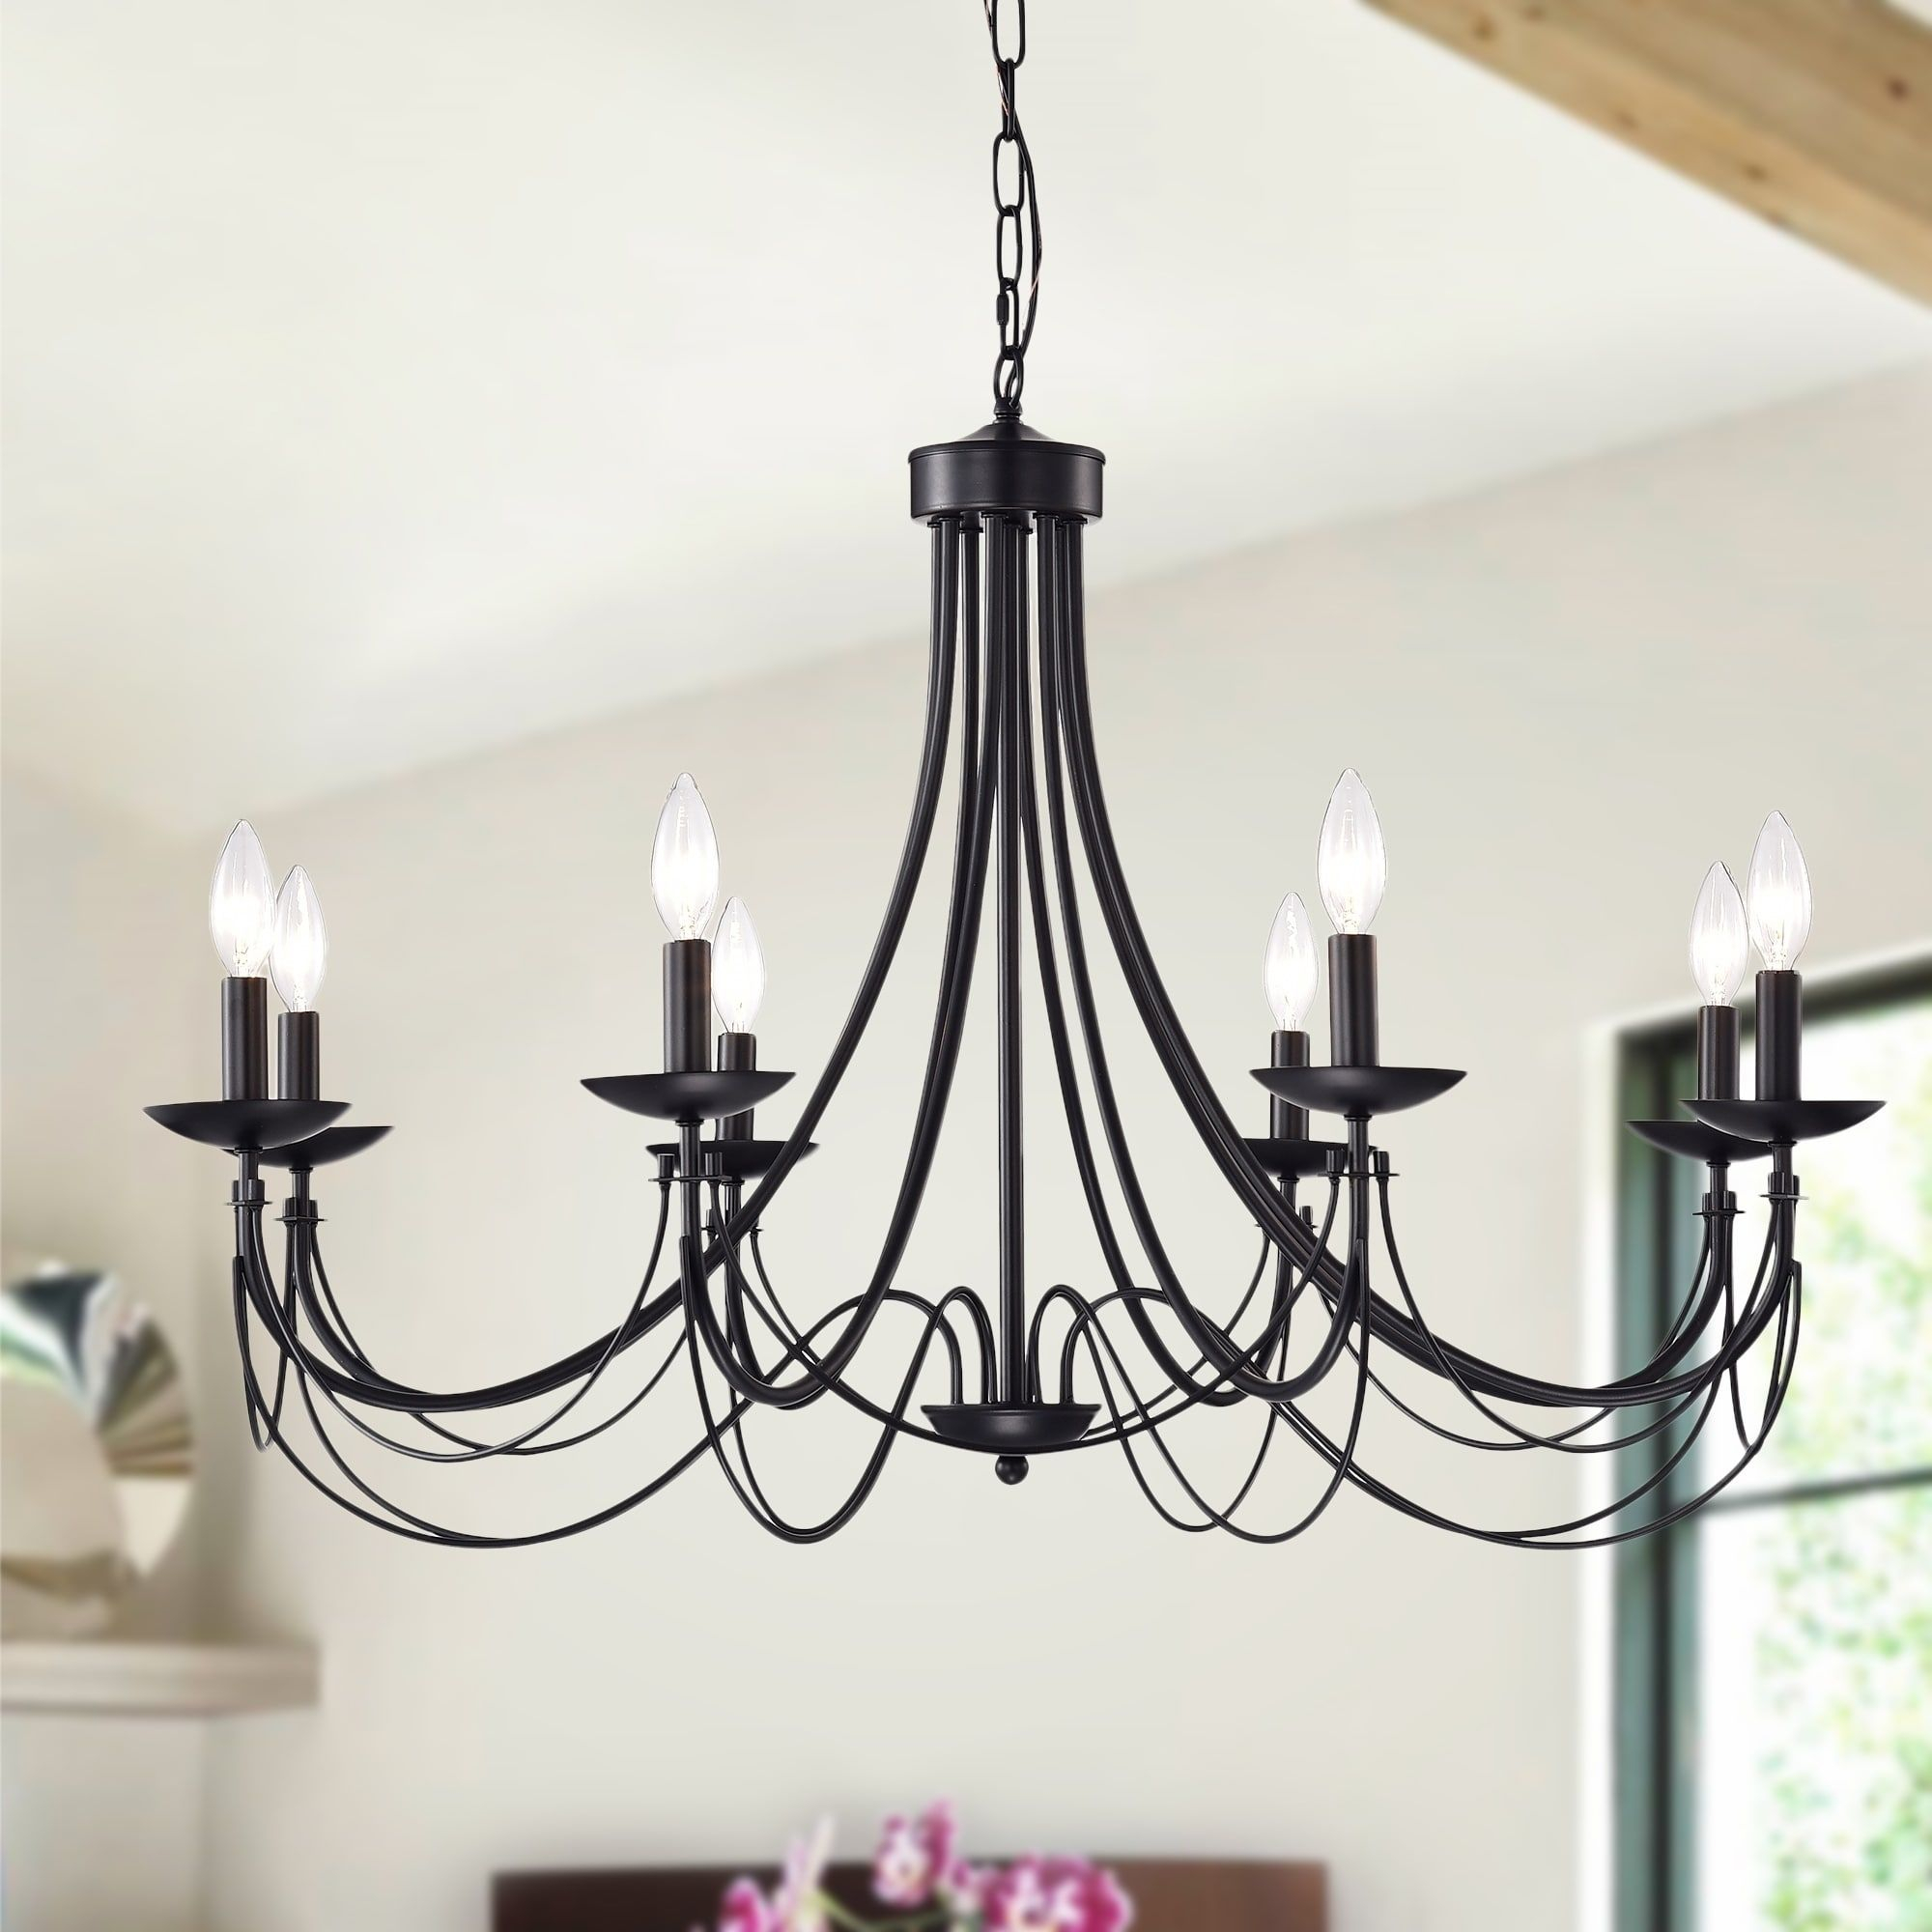 Clash 8 Light 35 Inch Matte Black Branched Chandelier In Florentina 5 Light Candle Style Chandeliers (View 20 of 30)